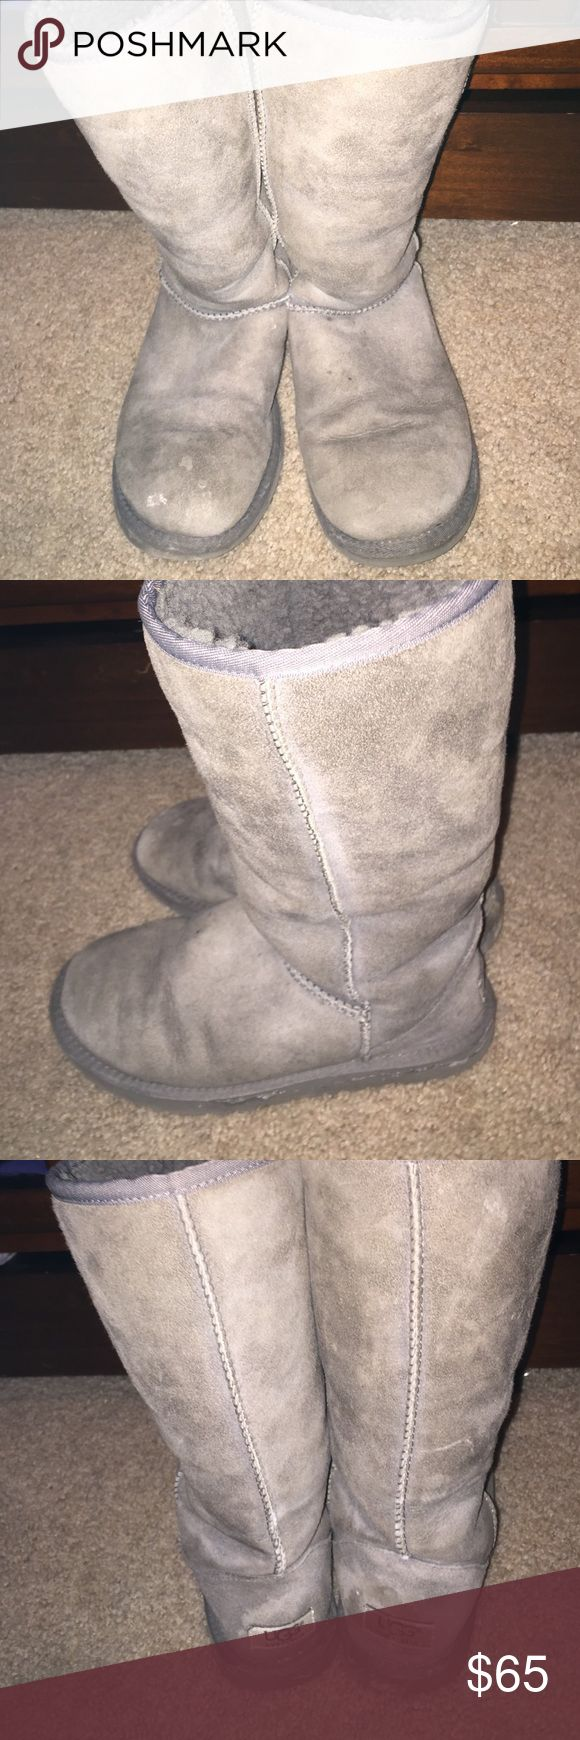 Ugg boots GUC charcoal grey Ugg boots. Slight water marks and snow marks throughout. Basic wear and crease by toe area. Can be removed with basic Ugg suede cleaner. Please ask for more pics if interested and I'll be happy to update post. UGG Shoes Winter & Rain Boots